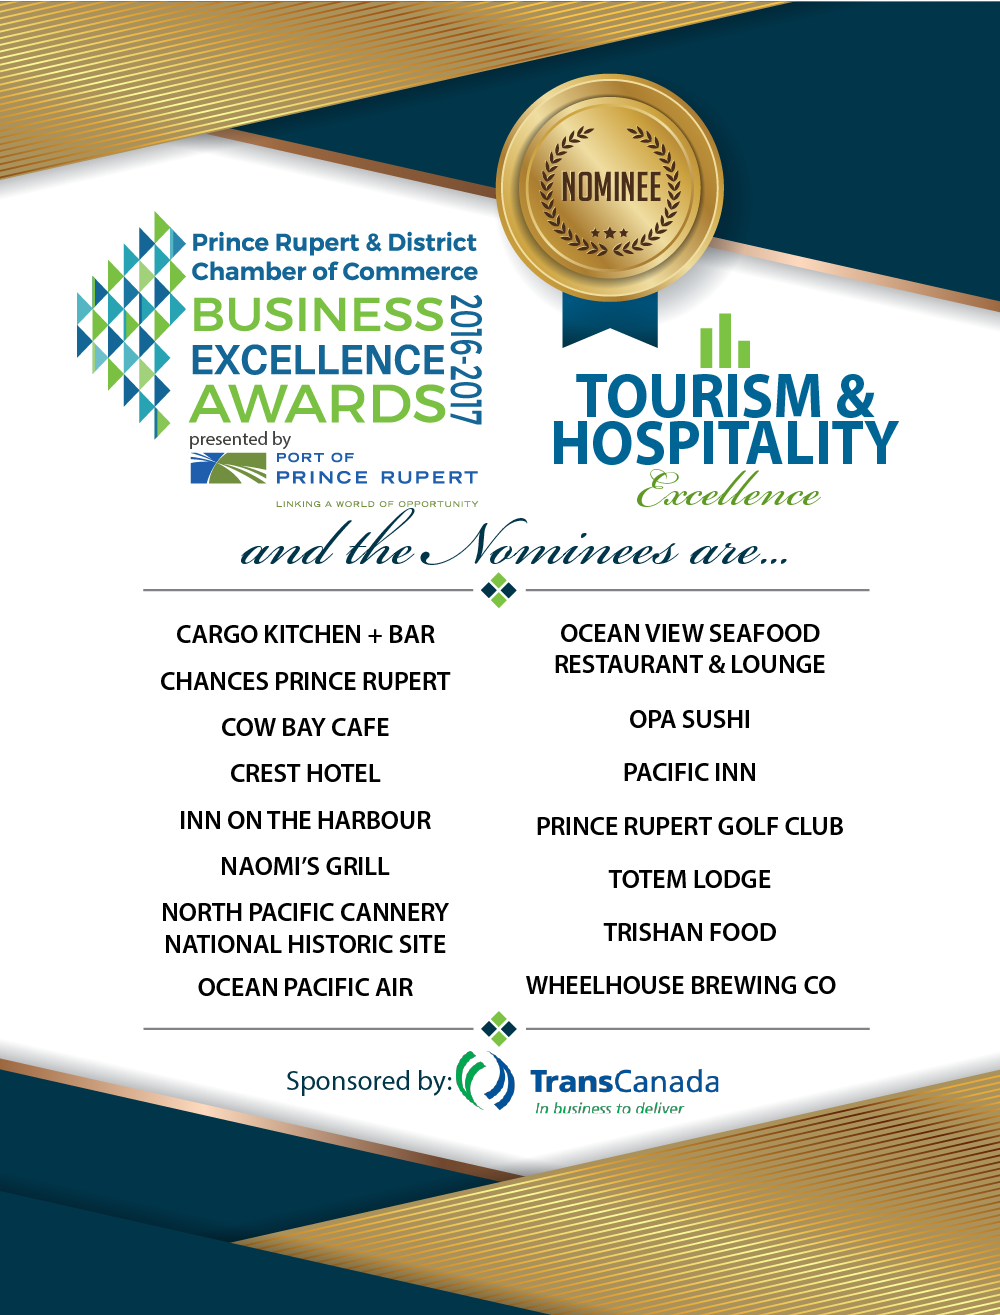 Tourism and Hospitality Excellence